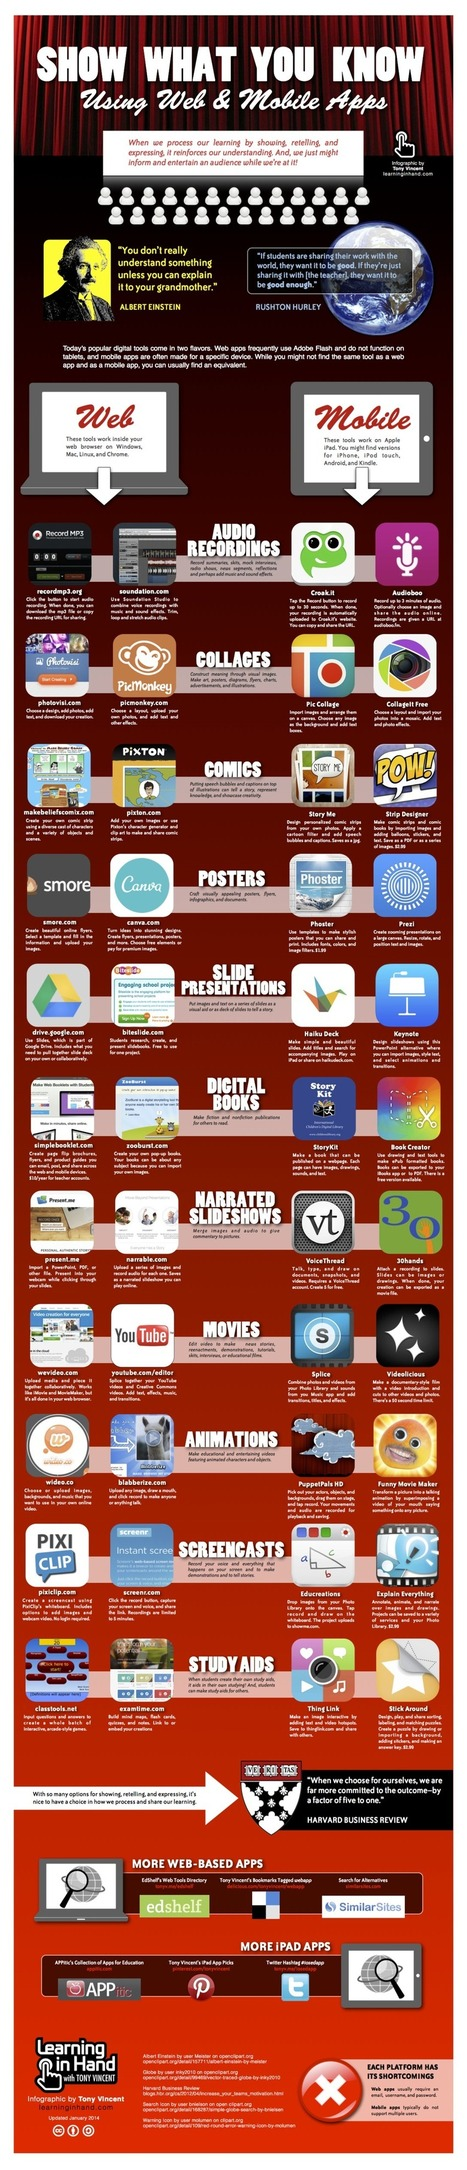 Show What You Know Using Web & Mobile Apps Infographic ... | Edtech PK-12 | Scoop.it